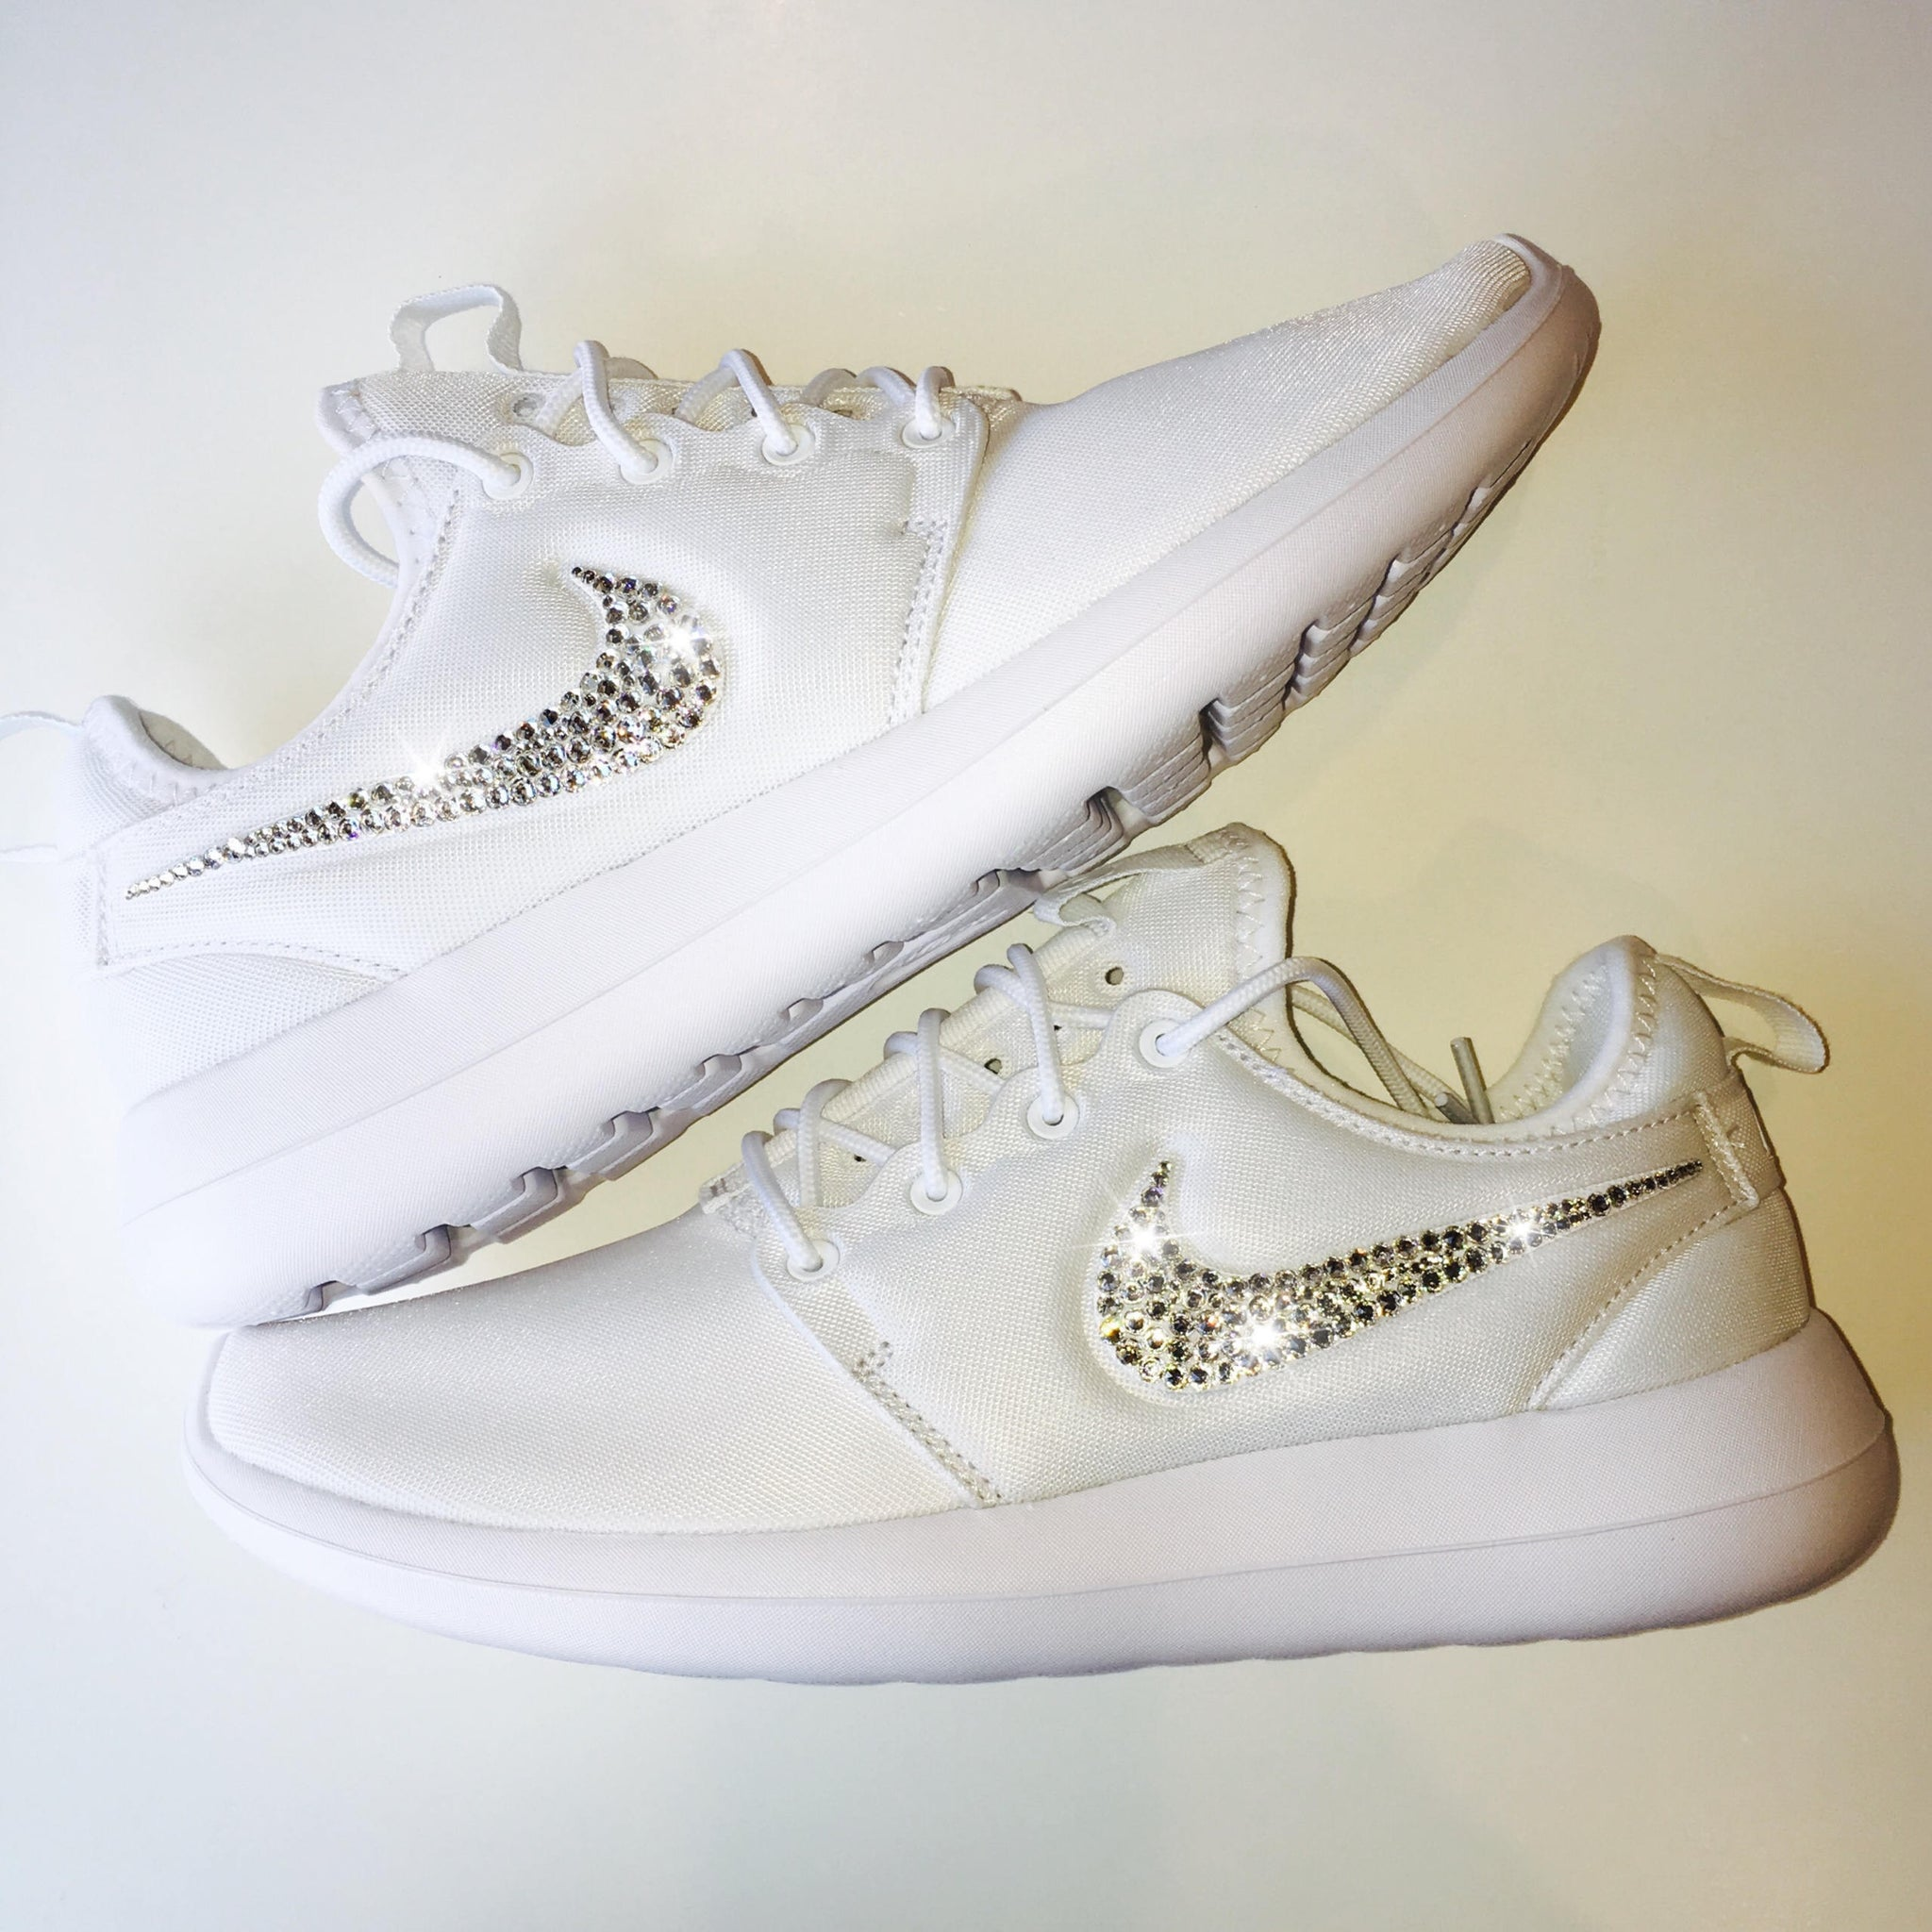 8236e27e1c81e9 Bling Nike Roshe Two Shoes with Swarovski Crystals   White   Bedazzled  Authentic Swarovski Crystal Rhinestones